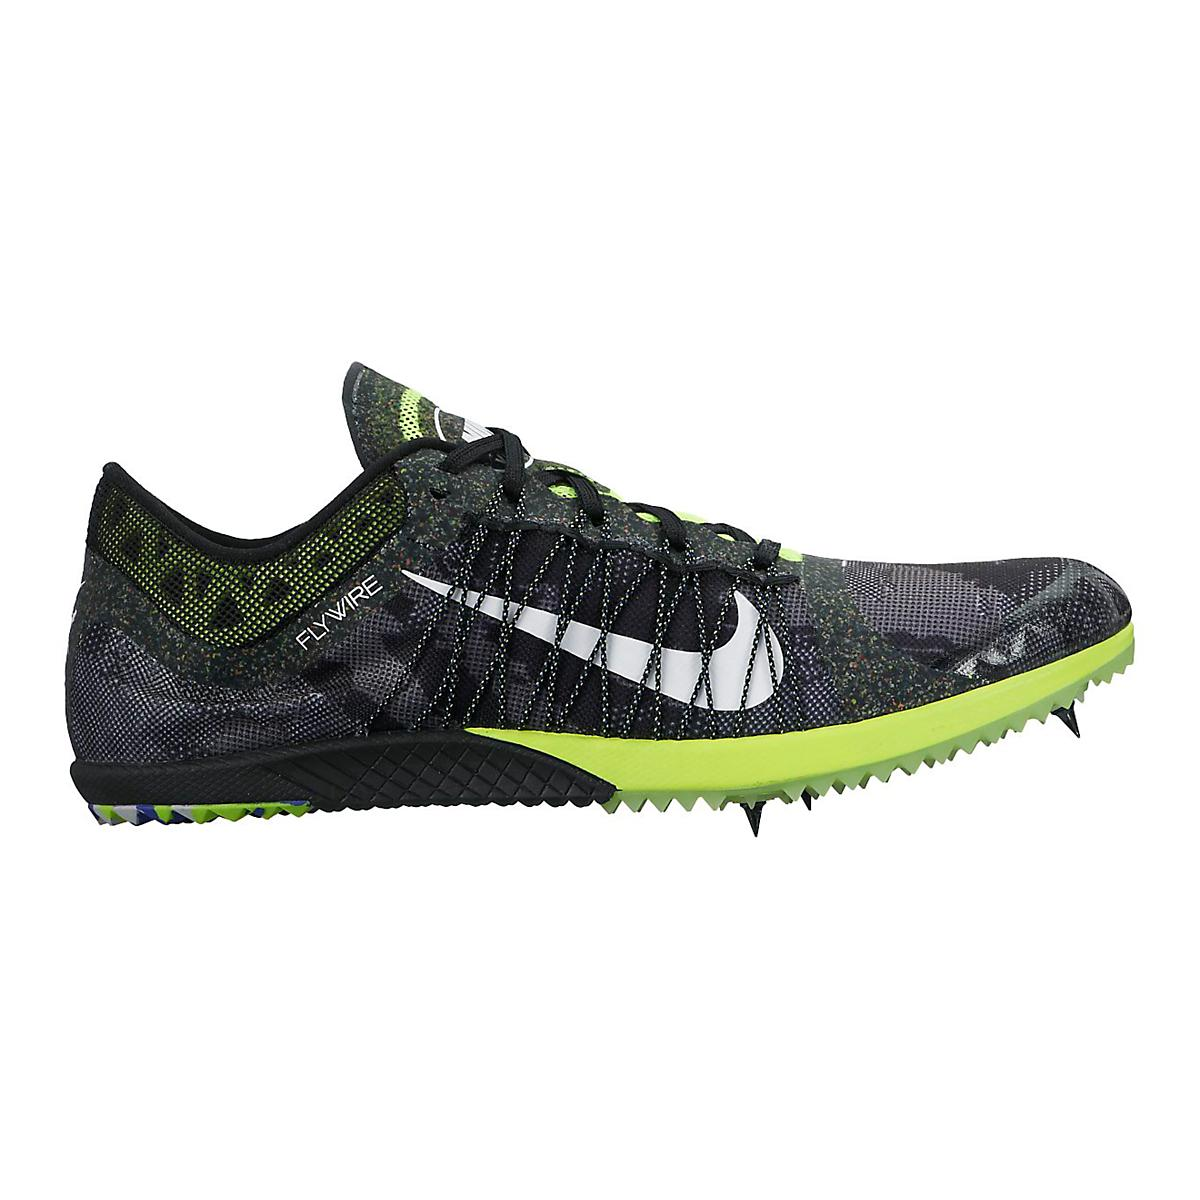 de7c1dd1aba182 Nike Zoom Victory XC 3 Cross Country Shoe at Road Runner Sports